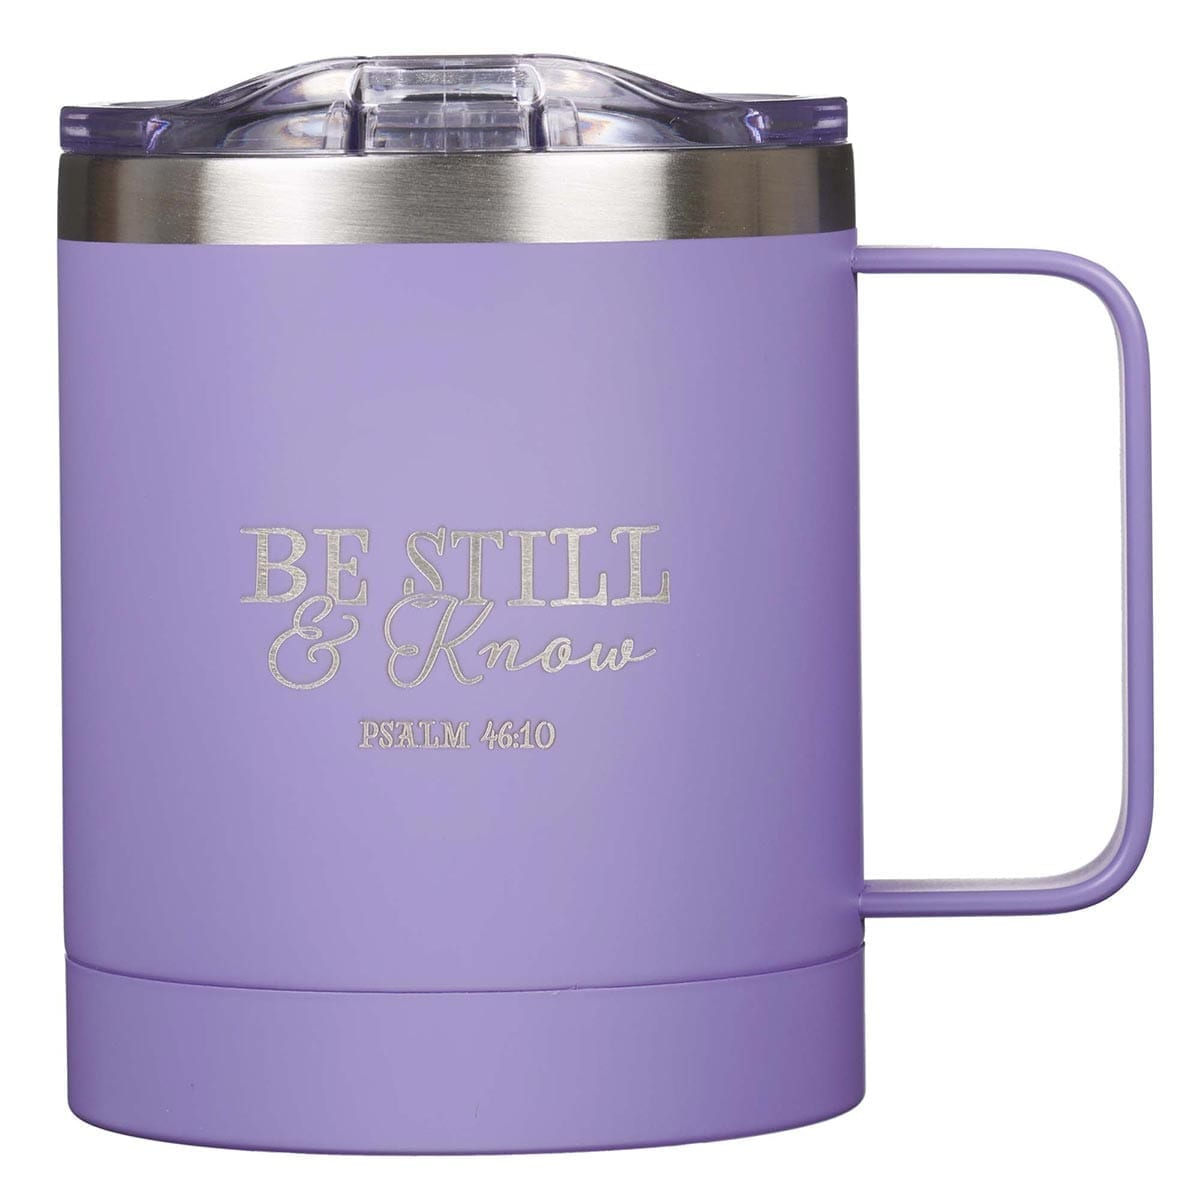 Be Still & Know Lavender Camp Style Stainless Steel Mug - Psalm 46:10